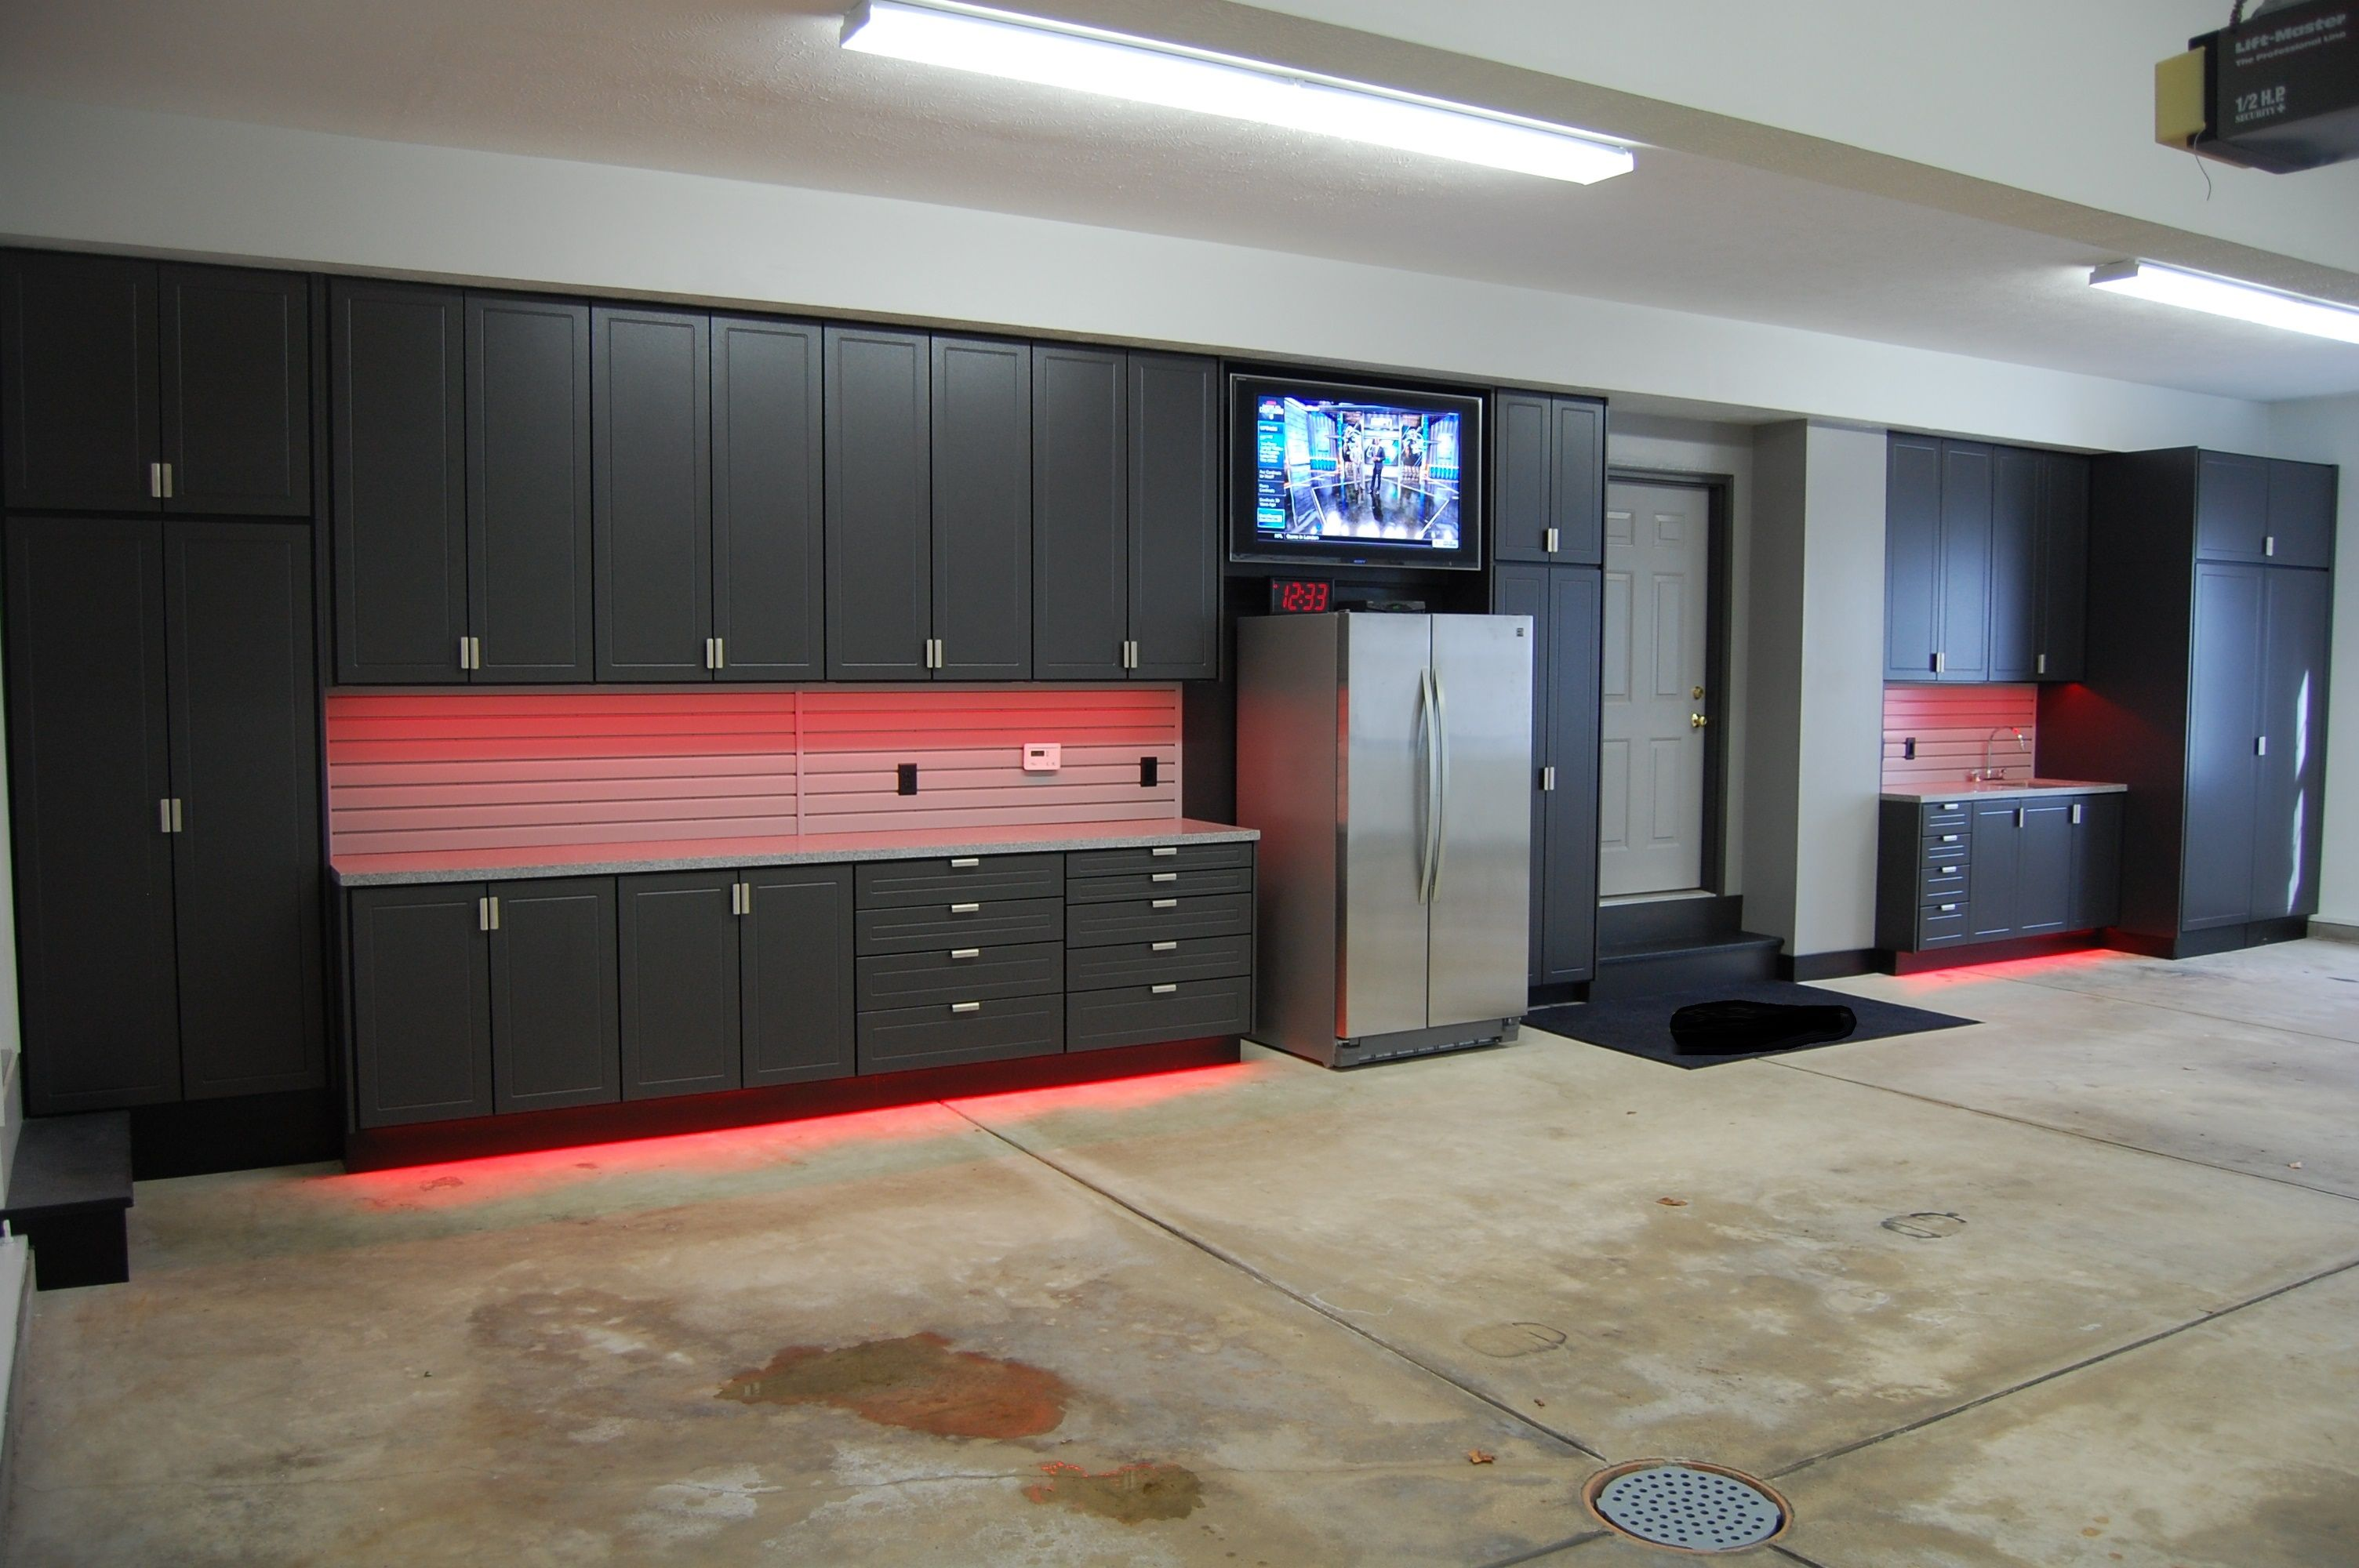 garage cabinets http www carguygarage com item guide garage garage cabinets http www carguygarage com item guide garage cabinets html car guy garage photos pinterest